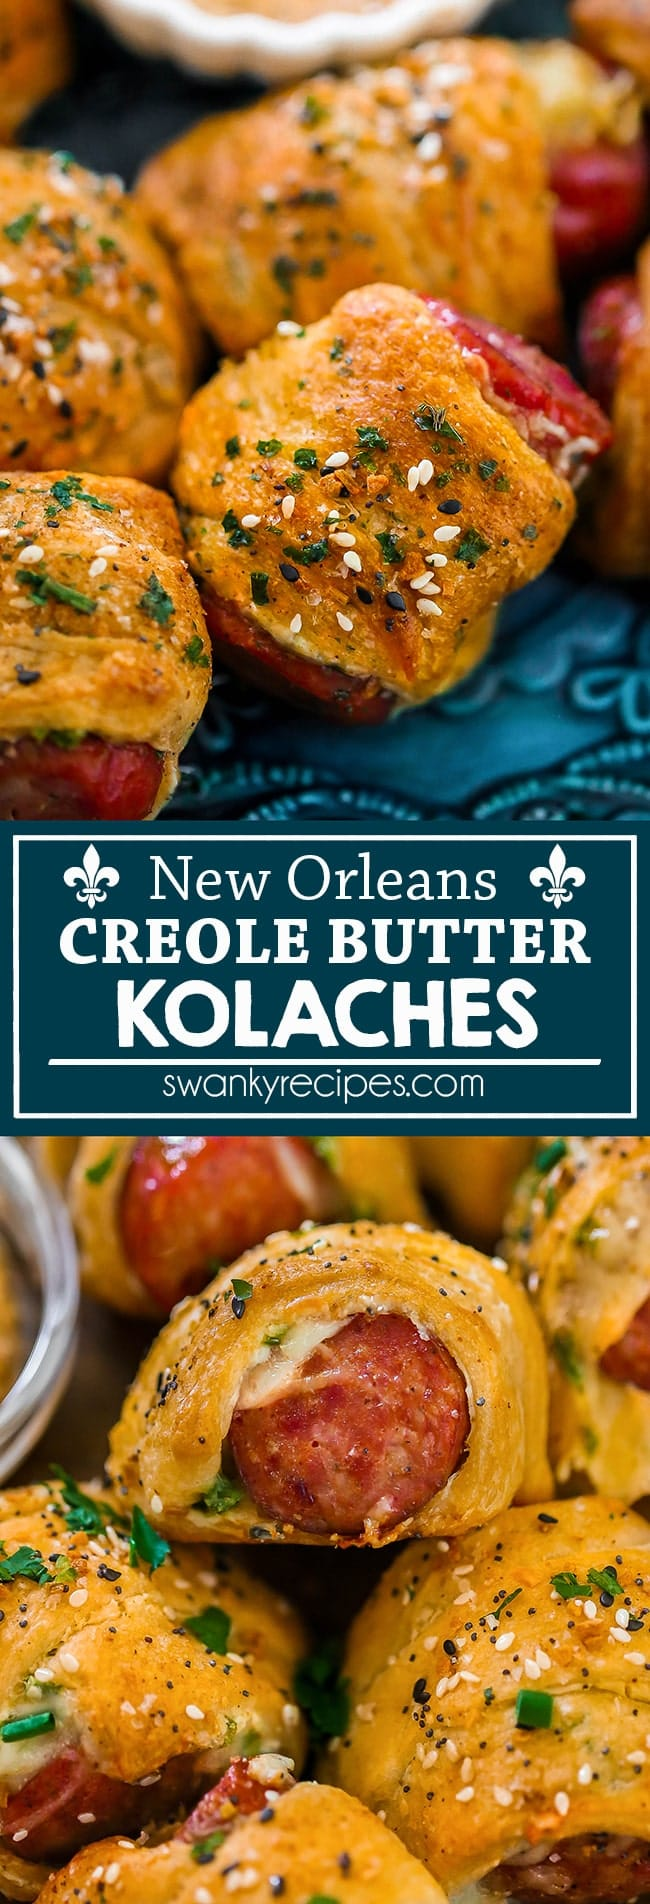 New Orleans Creole Butter Kolaches - A Louisiana style appetizer with authentic French Quarter flavor. Pork Sausage smothered in Creole butter and rolled in a puff pastry with cheese. Serve these adult pigs in a blanket as a game day appetizer or for Mardi Gras with Creole Mustard.